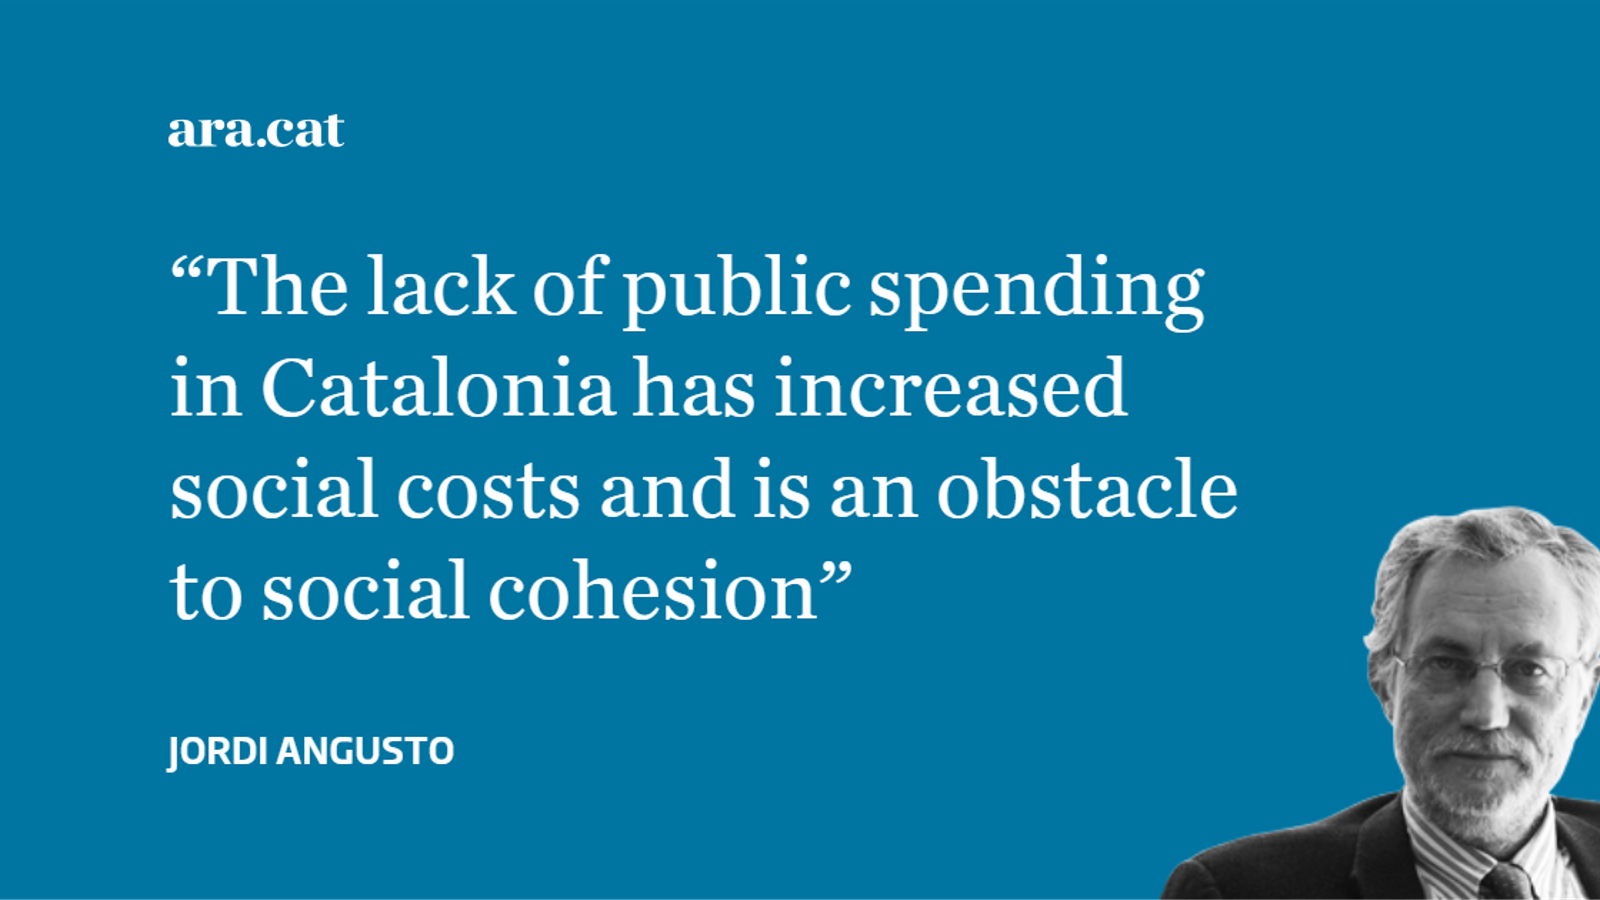 The social cost of Catalonia's fiscal deficit